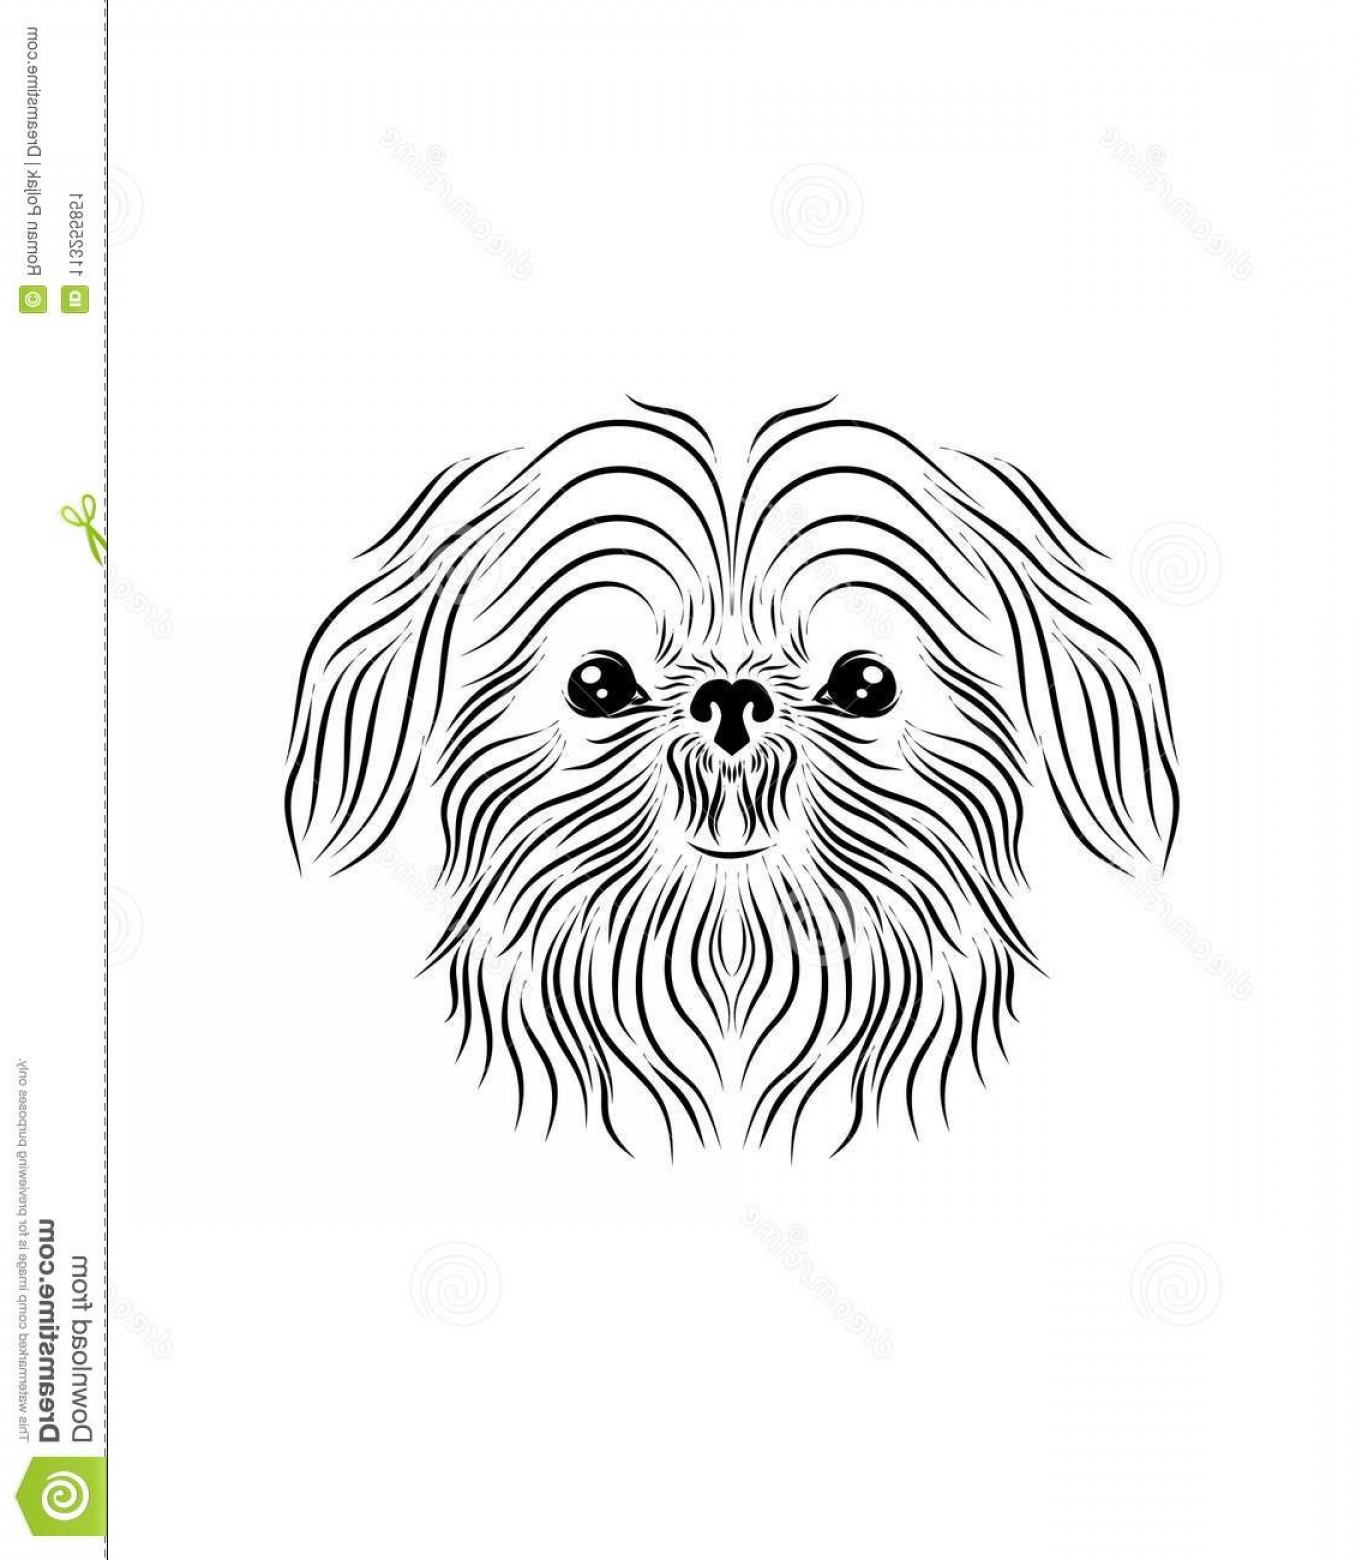 Shih Tzu Vector Siluete: Shih Tzu Dog Line Art Tribal Freehand Vector Illustration Shih Tzu Dog Line Art Tribal Freehand Vector Illustration Print Pod Image